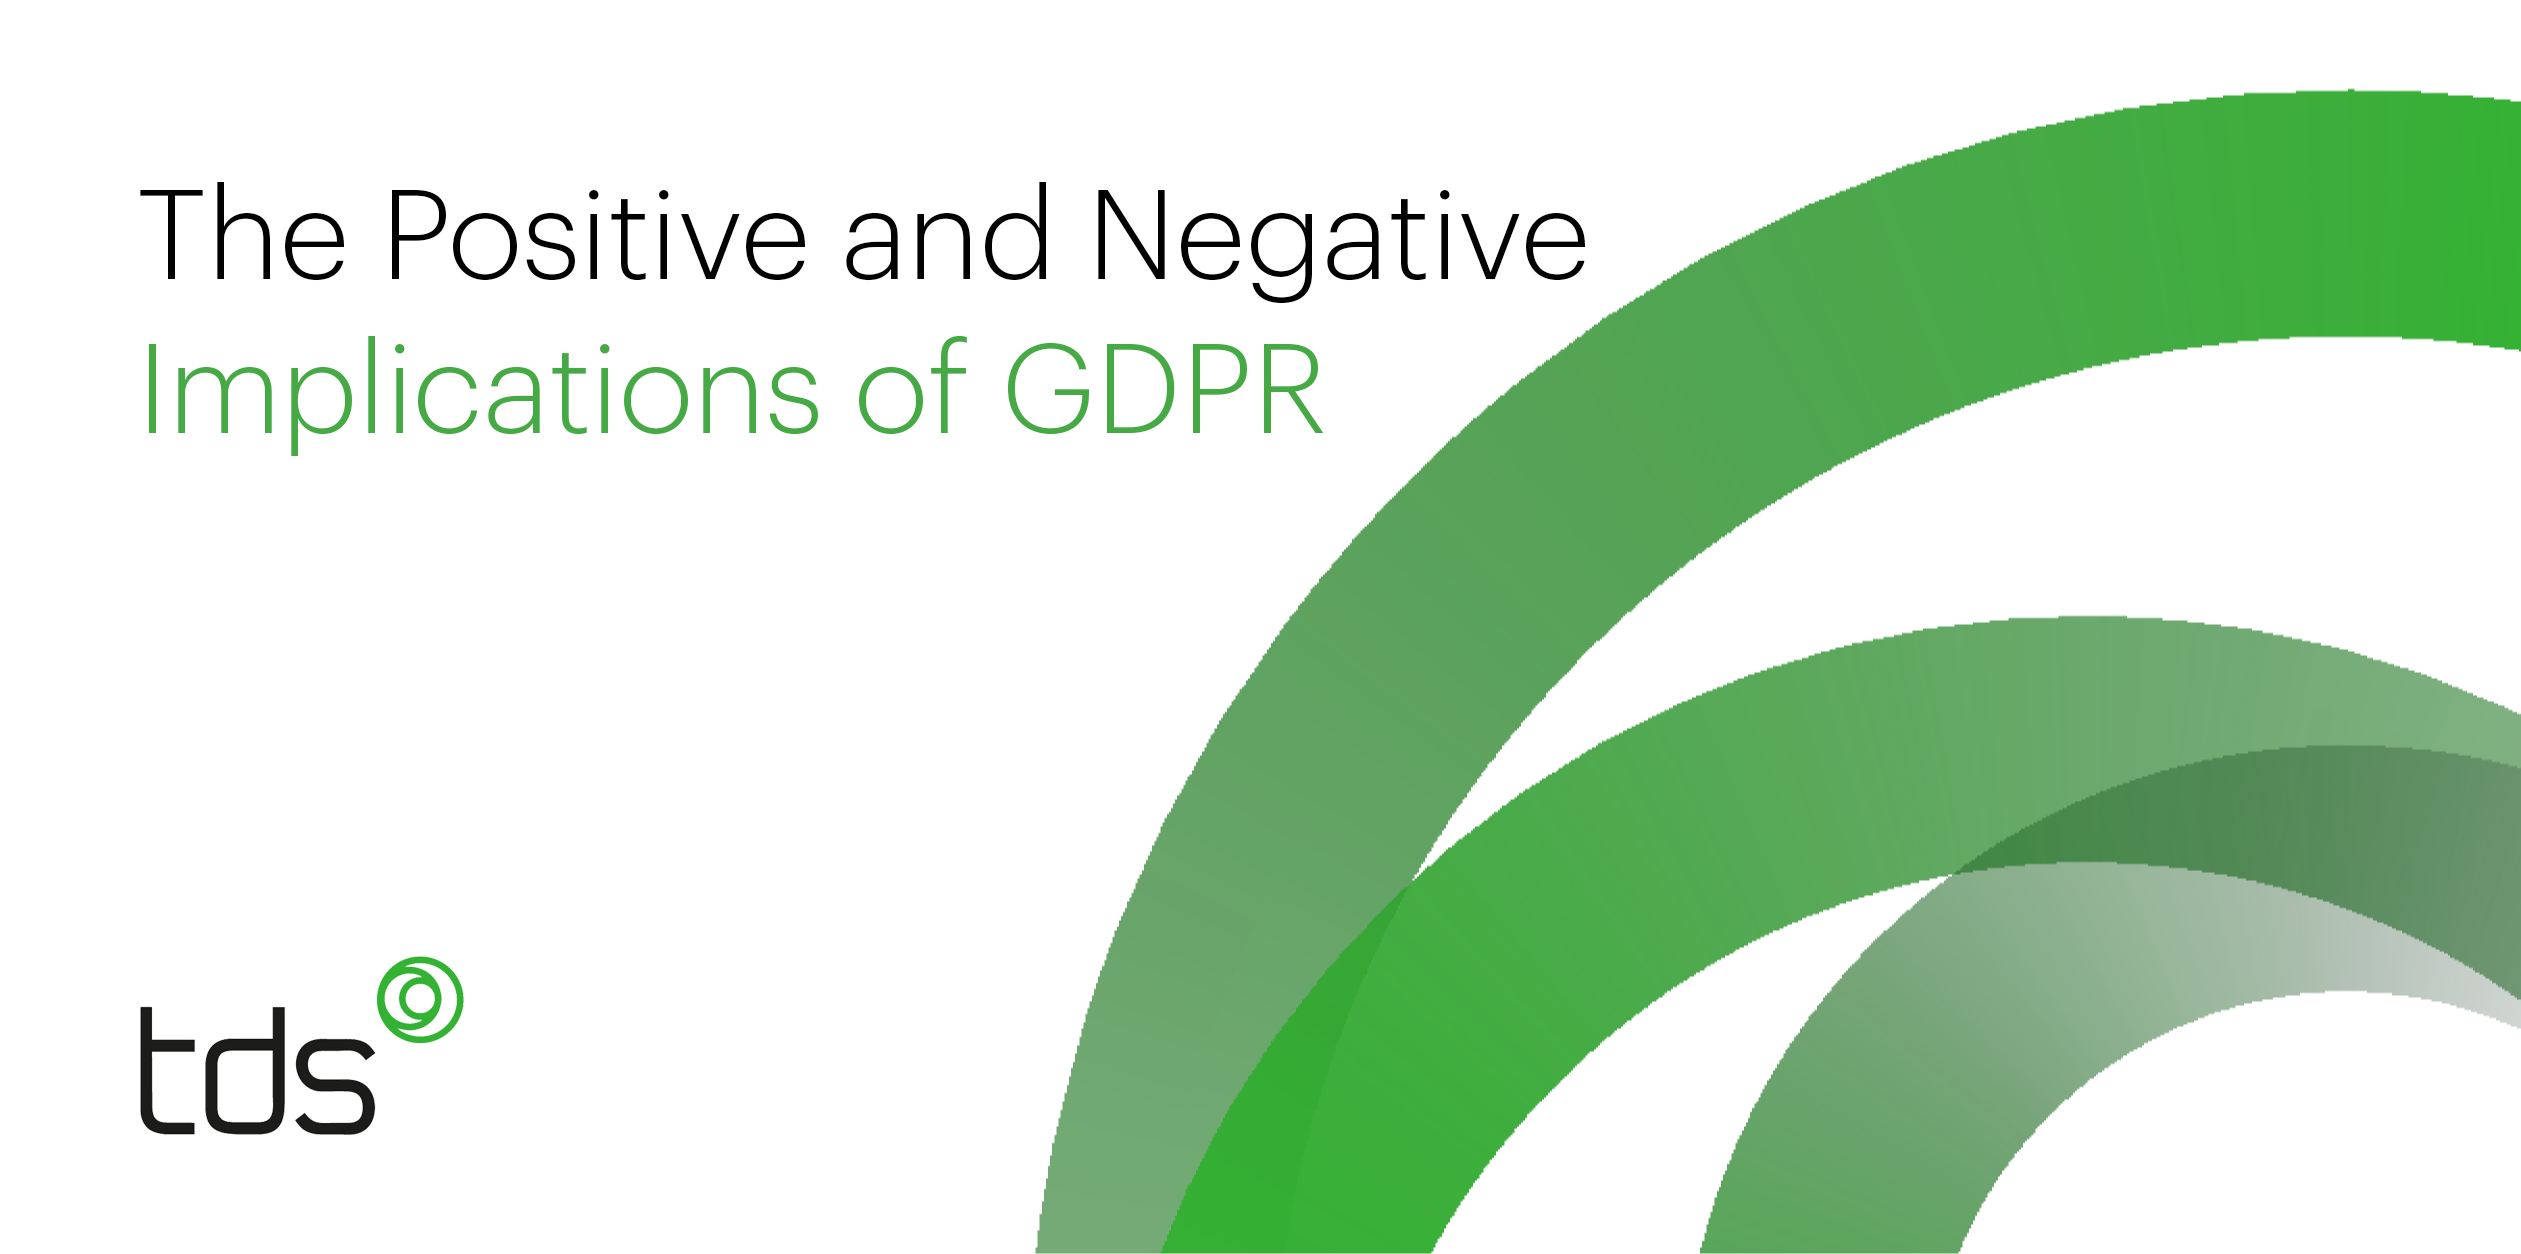 The Positive and Negative Implications of GDPR